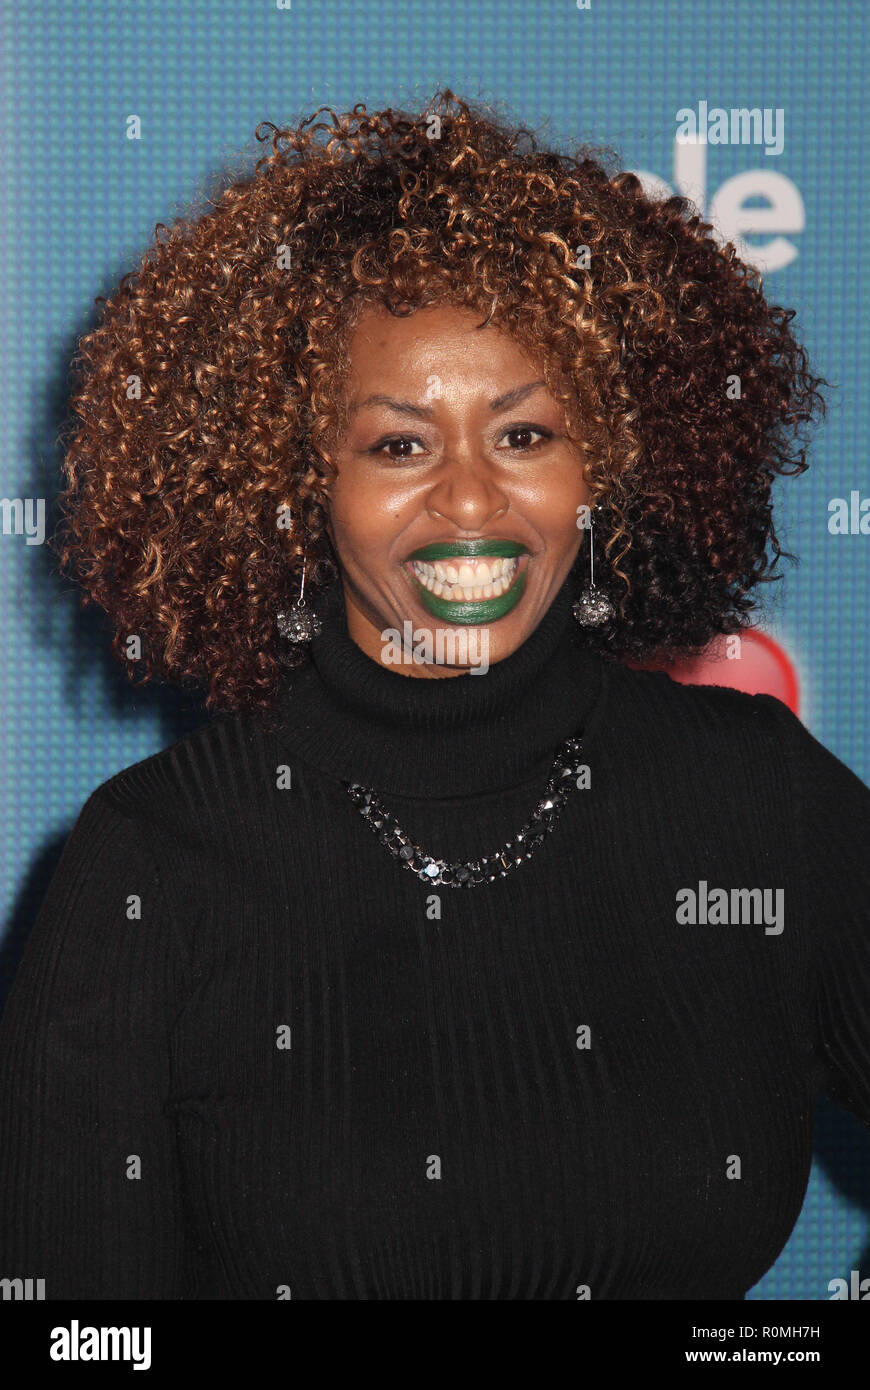 Los Angeles, USA. 5th Nov 2018. Glozell Green  11/05/2018 The World Premiere of 'Ralph Breaks the Internet' held at El Capitan Theatre in Los Angeles, CA Photo by Hiro Katoh / HNW / PictureLux Credit: PictureLux / The Hollywood Archive/Alamy Live News - Stock Image